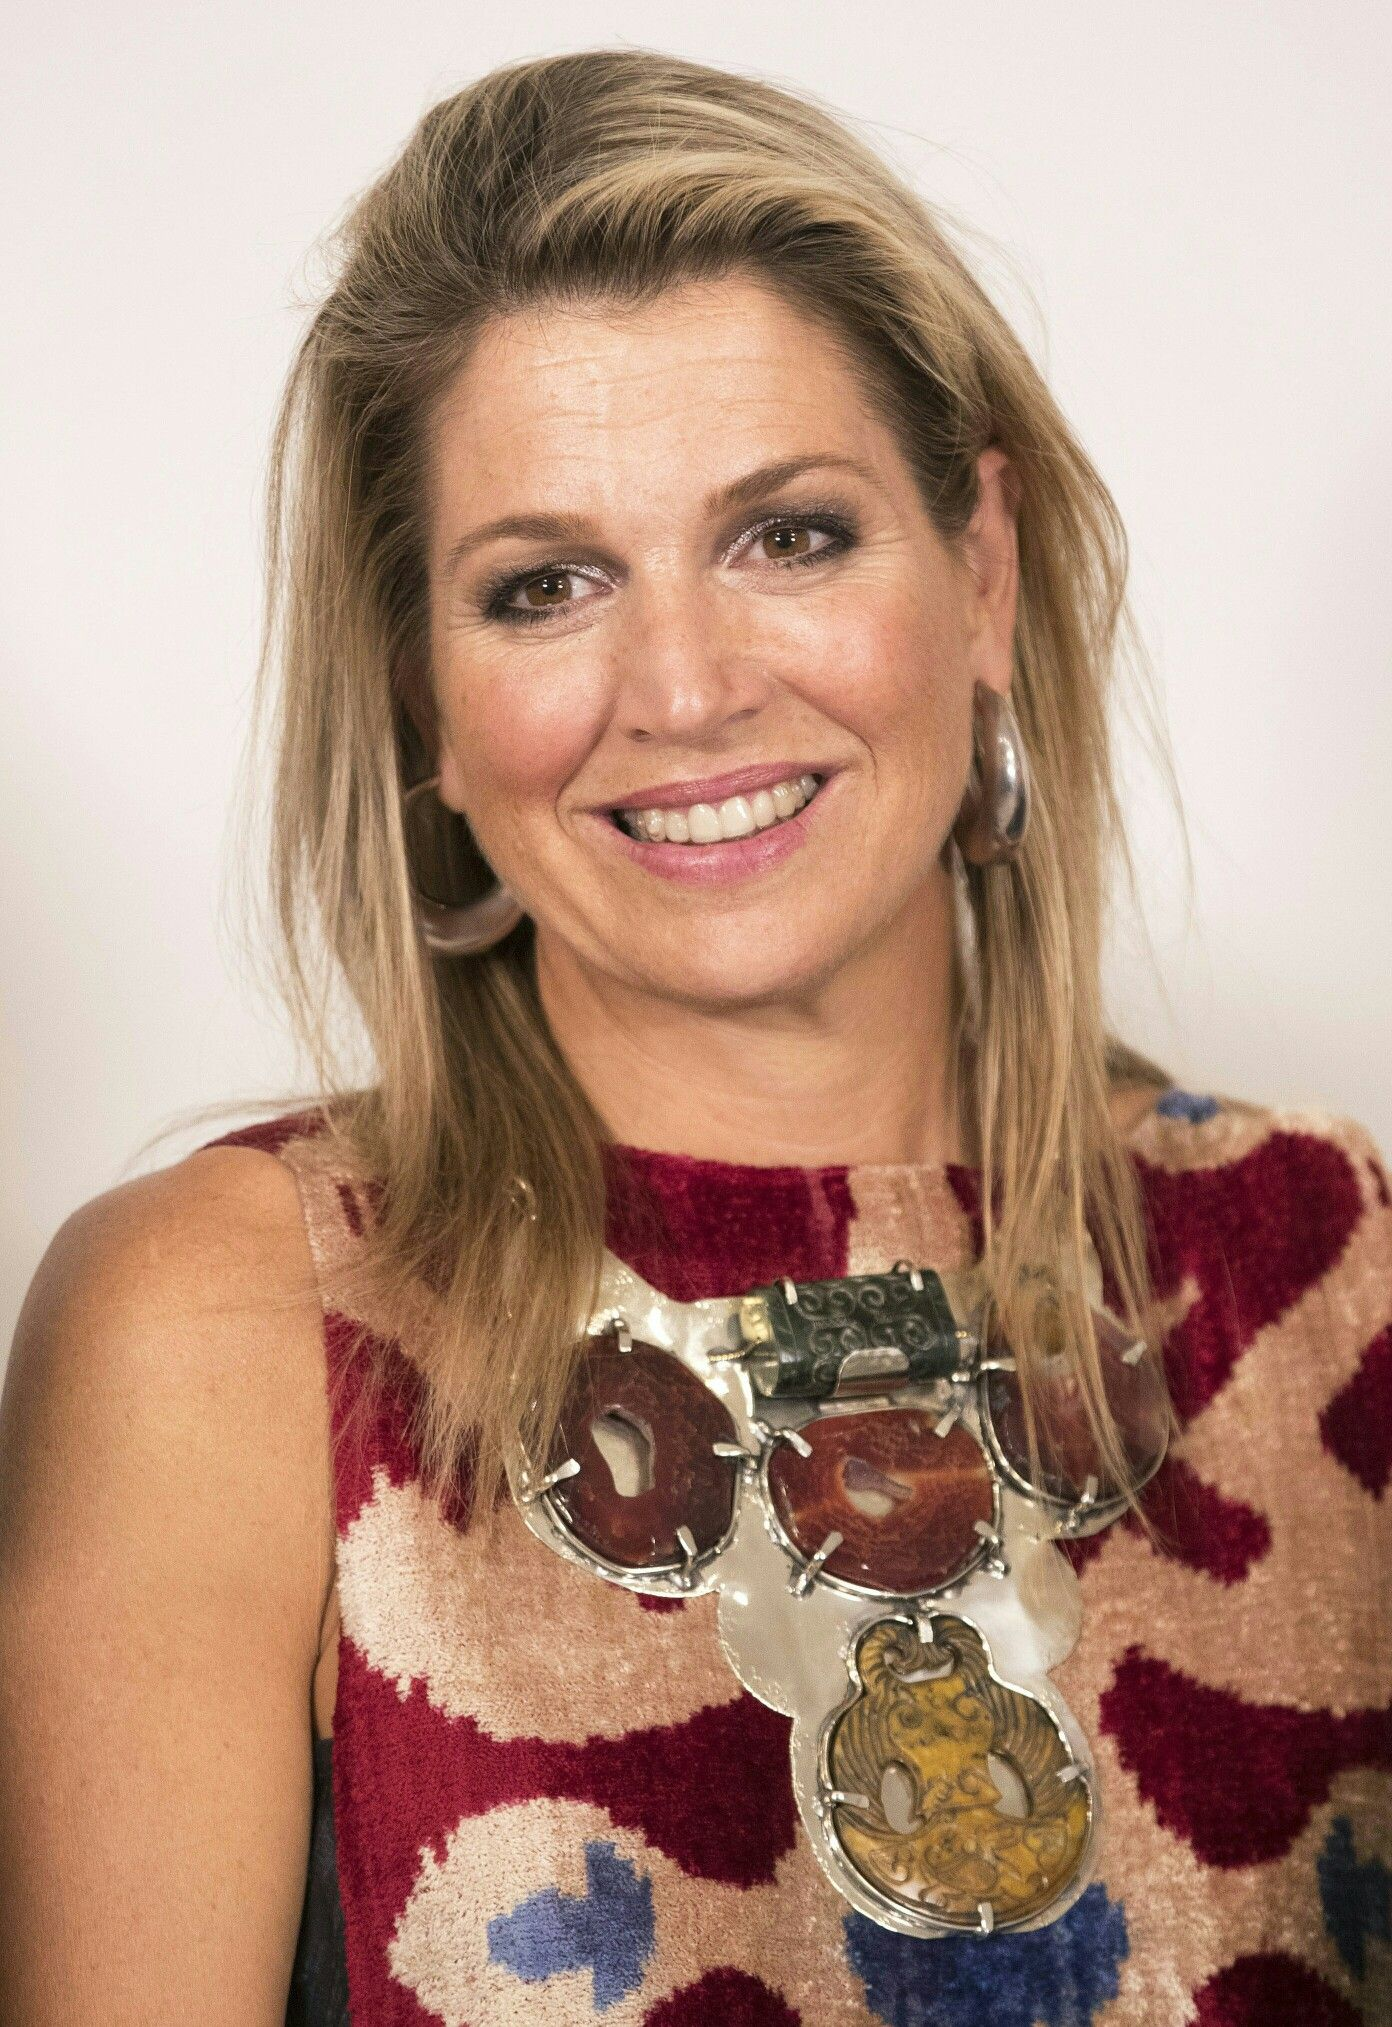 Pin by greetje lubbersen on maxima pinterest queen maxima